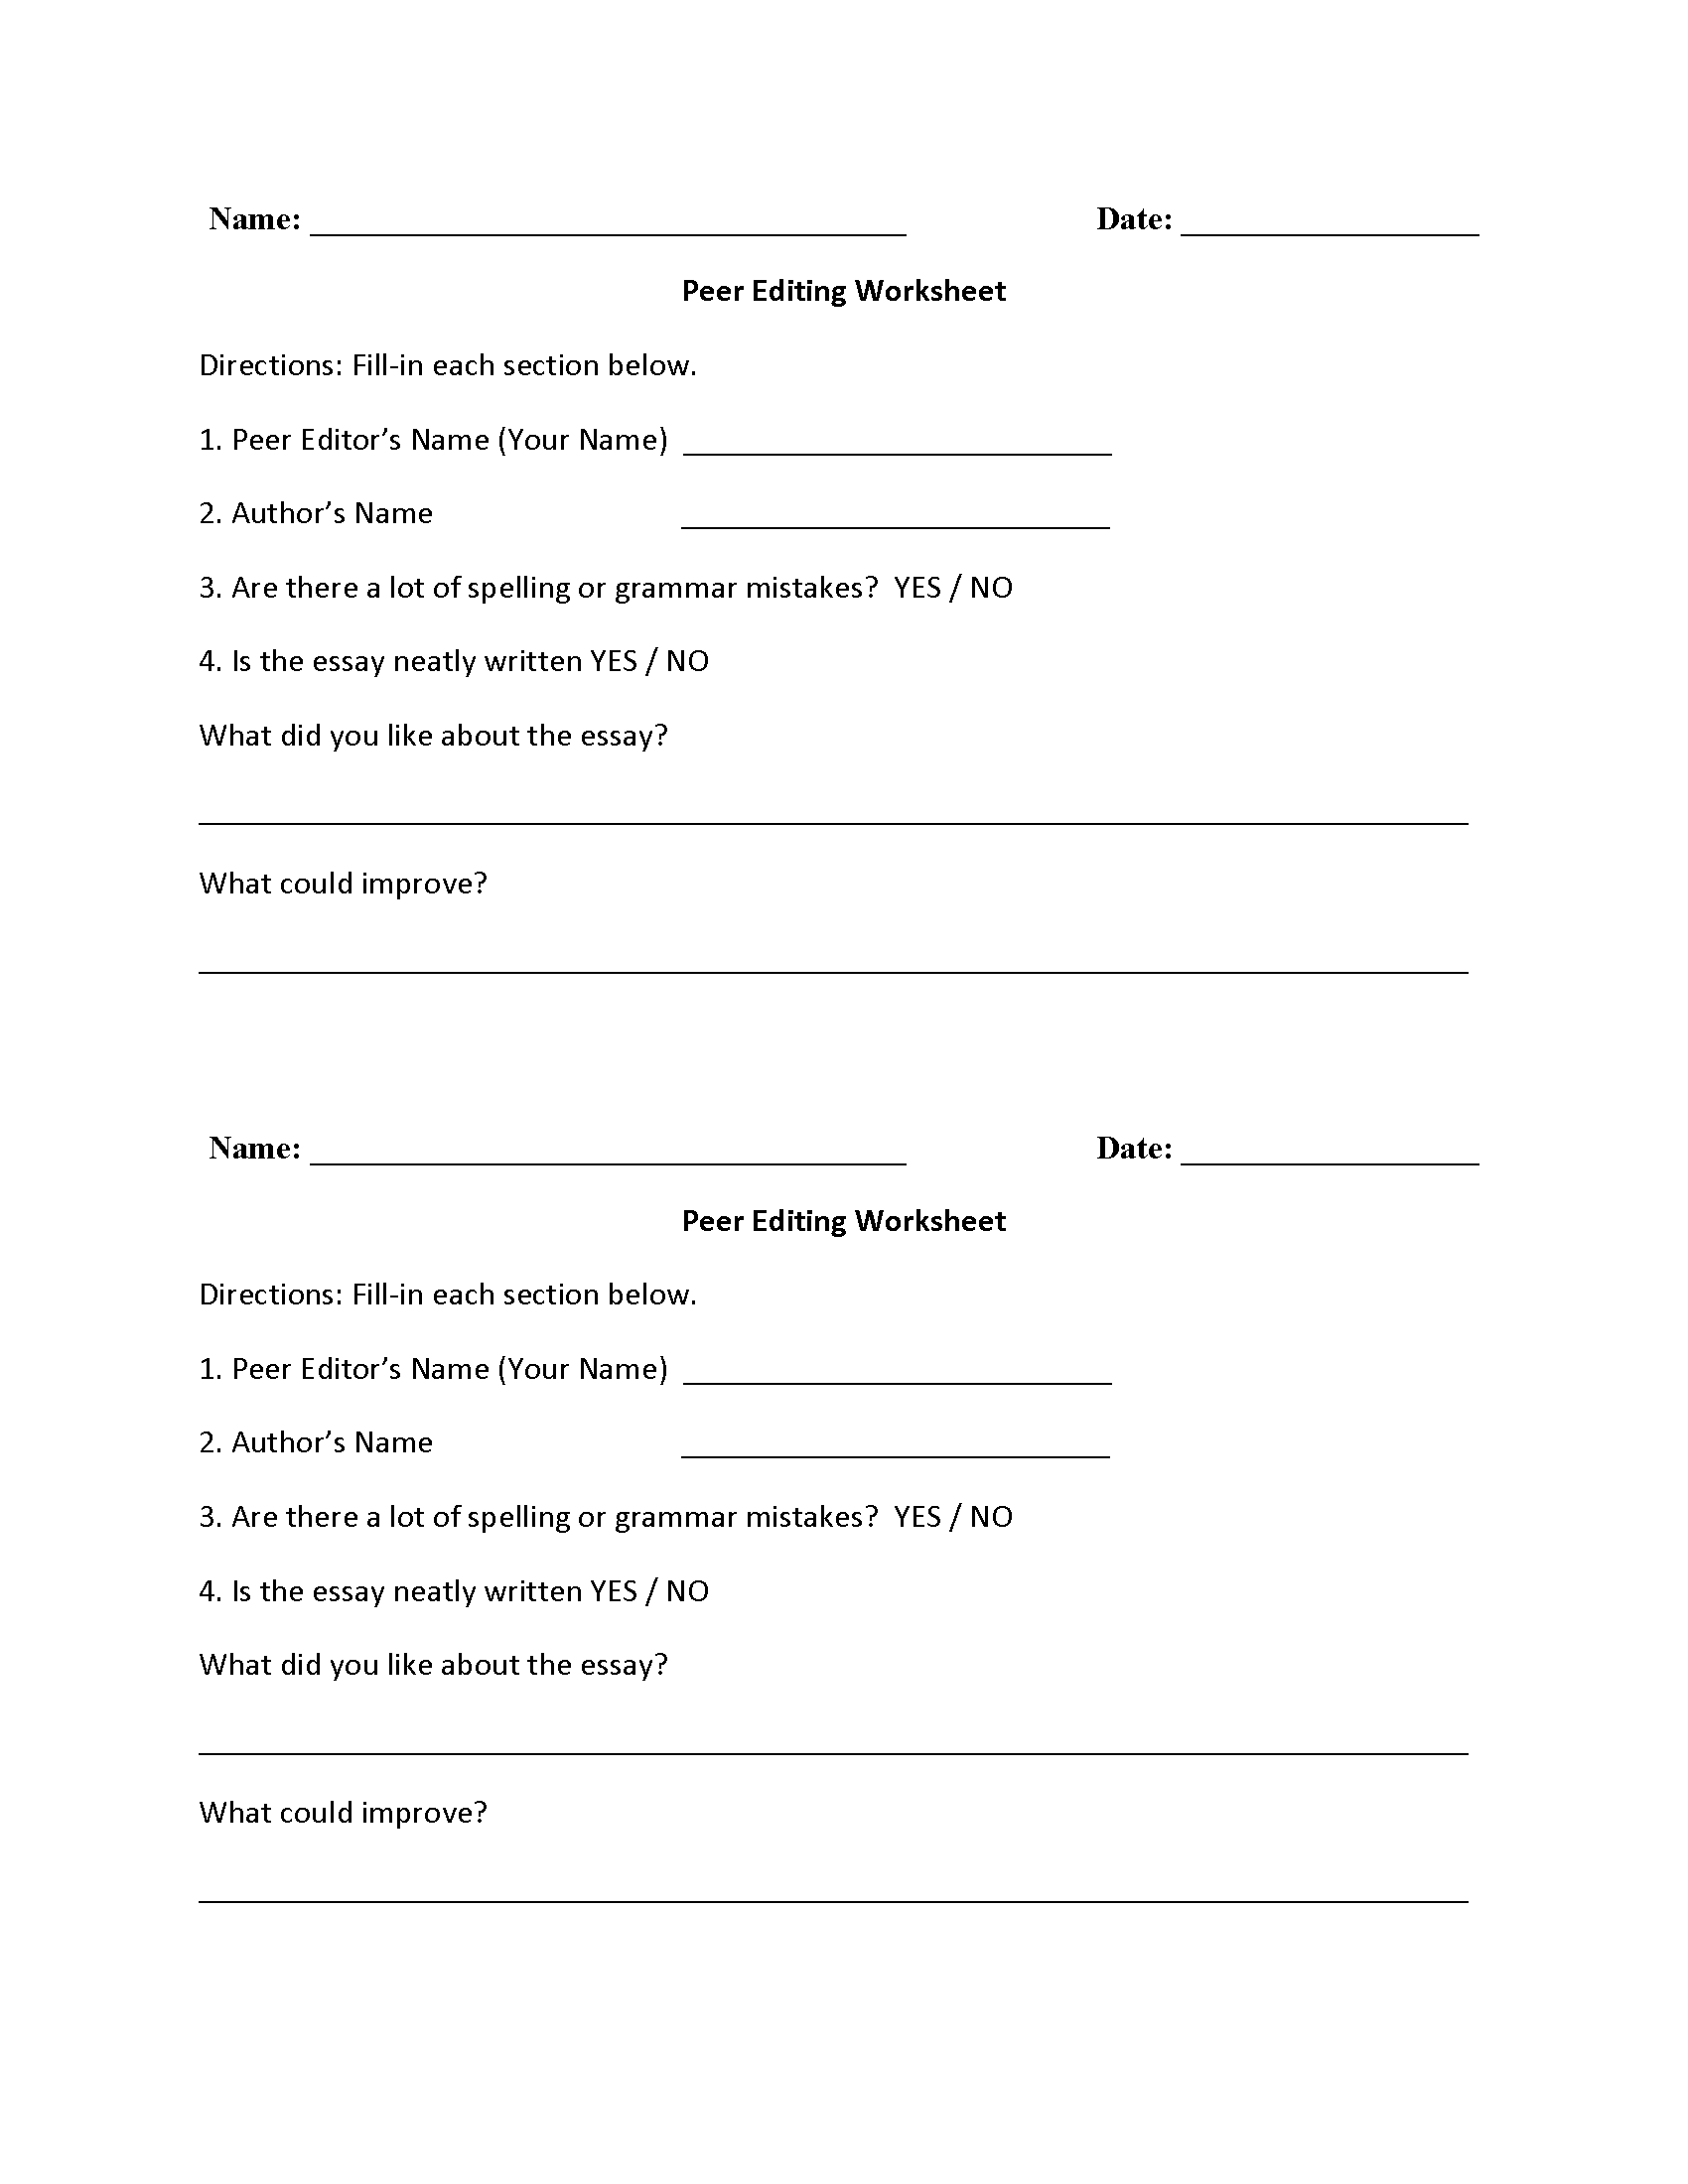 Worksheets Third Grade Editing Worksheets writing worksheets editing peer half sheet worksheet